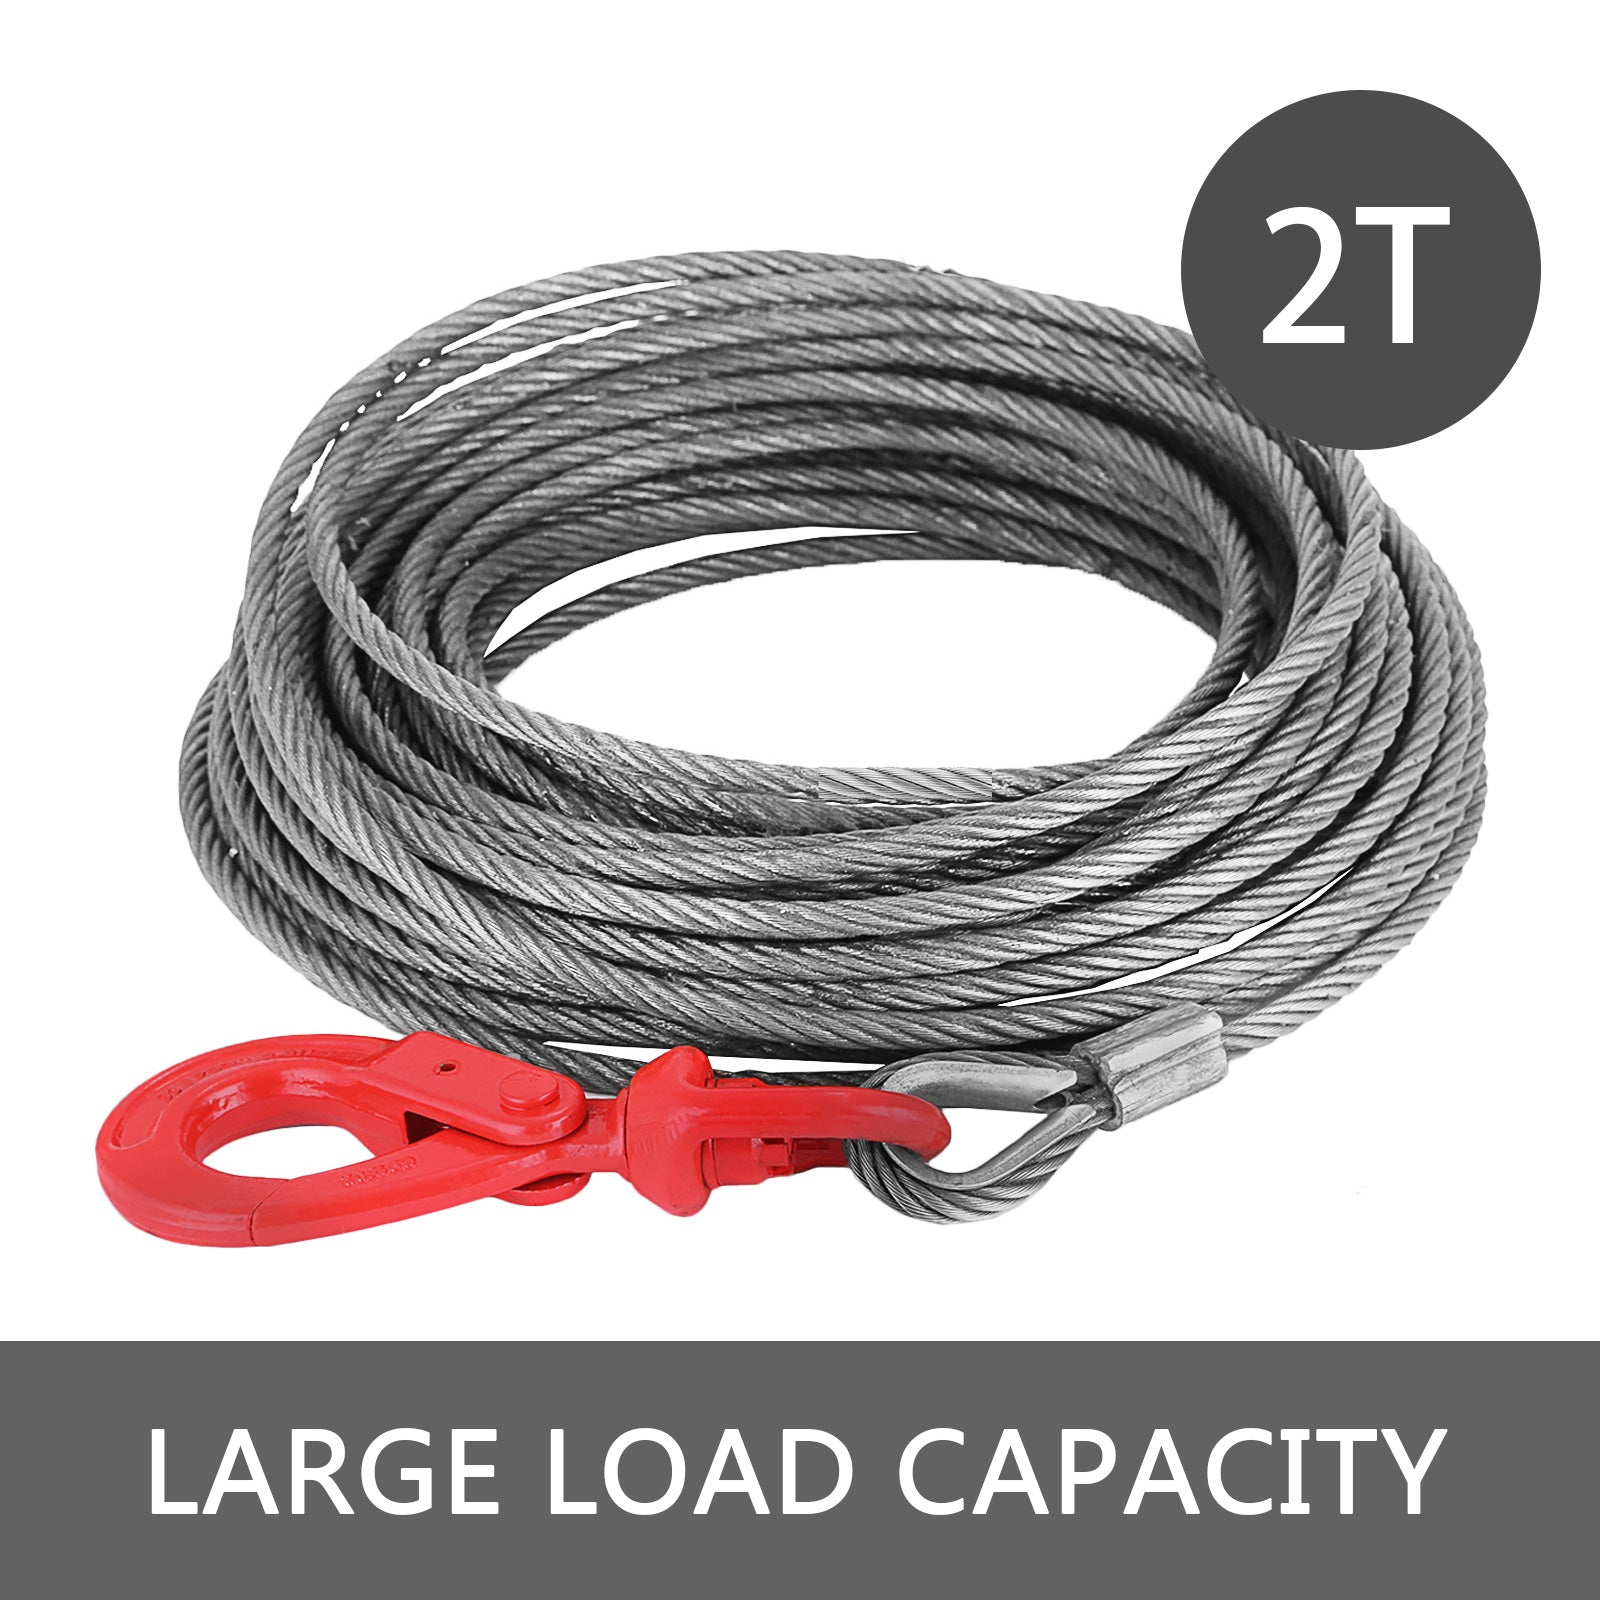 "Fiber Core Winch Cable 5/16""x100' With Swivel Hook 4400lbs High Strength"